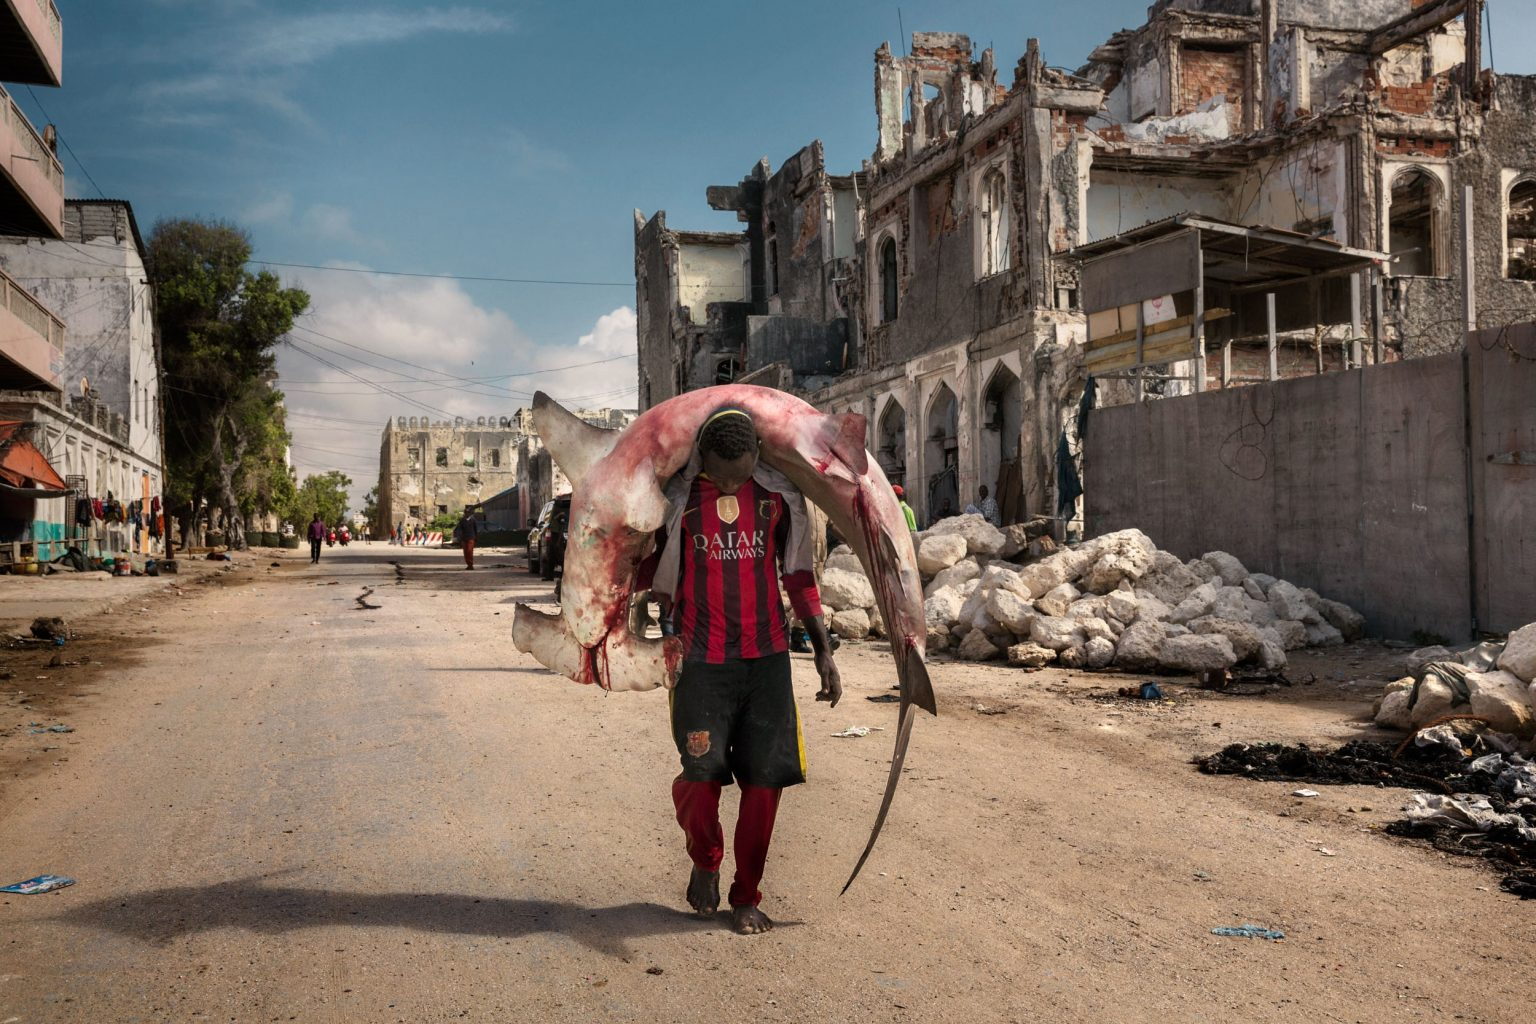 Africa, Somalia, Mogadishu. 10/10/2015. A man carries a shark through the streets of Mogadishu. A recent escalation of plunders of Somali waters by foreign fishing vessels could mean the return of hijackings, locals warn. The country's waters have been exploited by illegal fisheries and the economic infrastructure that once provided jobs has been ravaged.